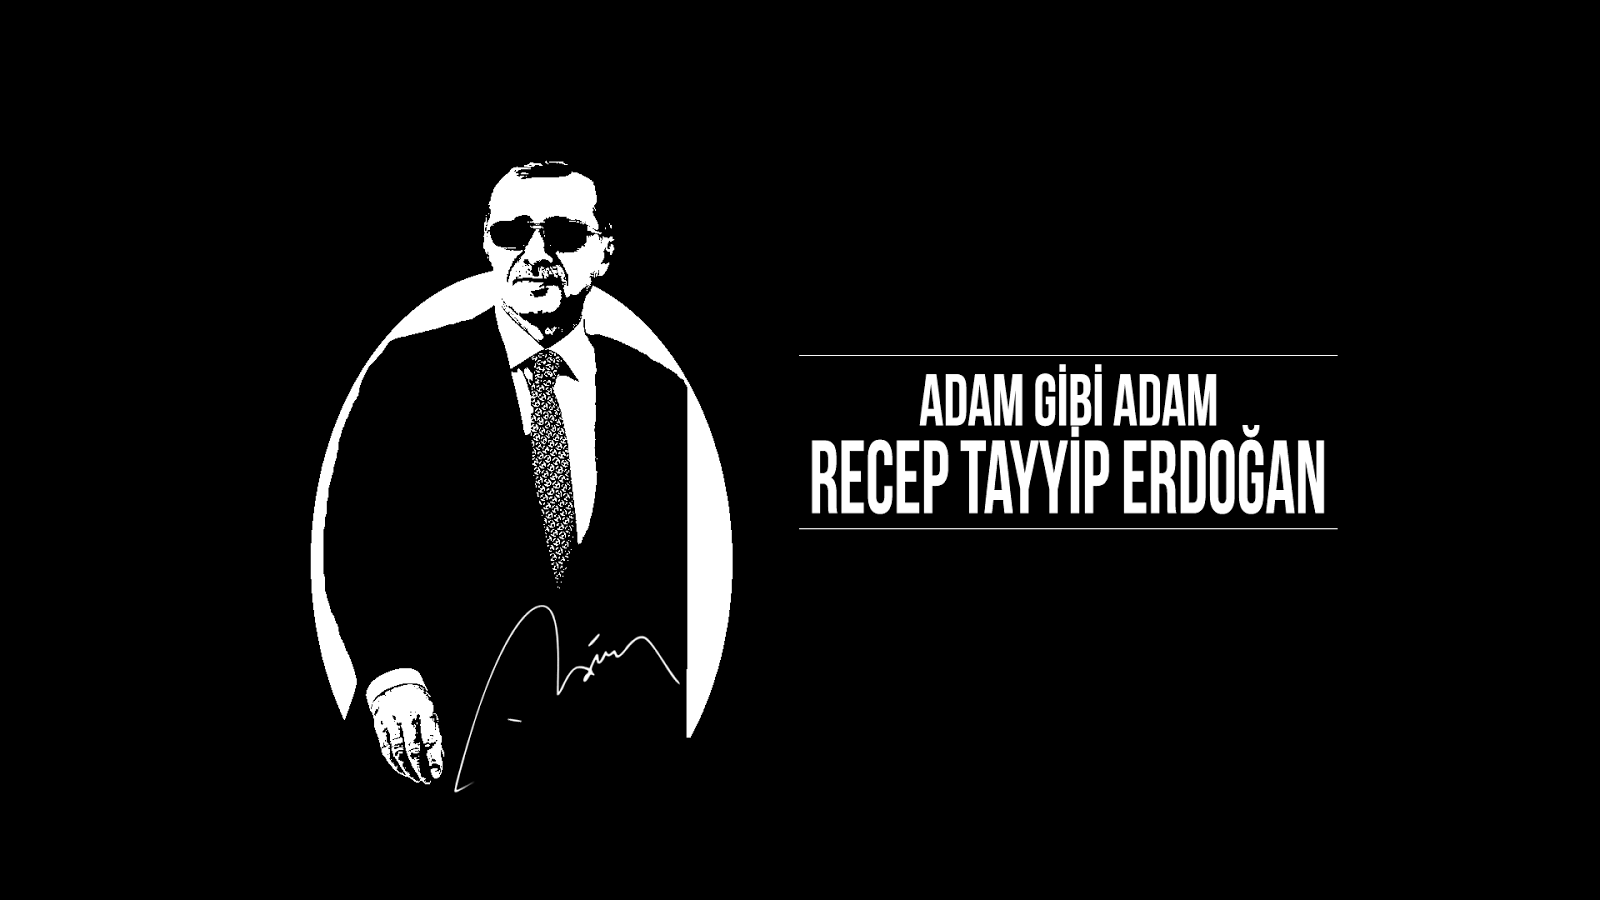 Recep-tayyip-erdogan-wallpaper-1.png | HD Wallpapers, HD images, HD Pictures